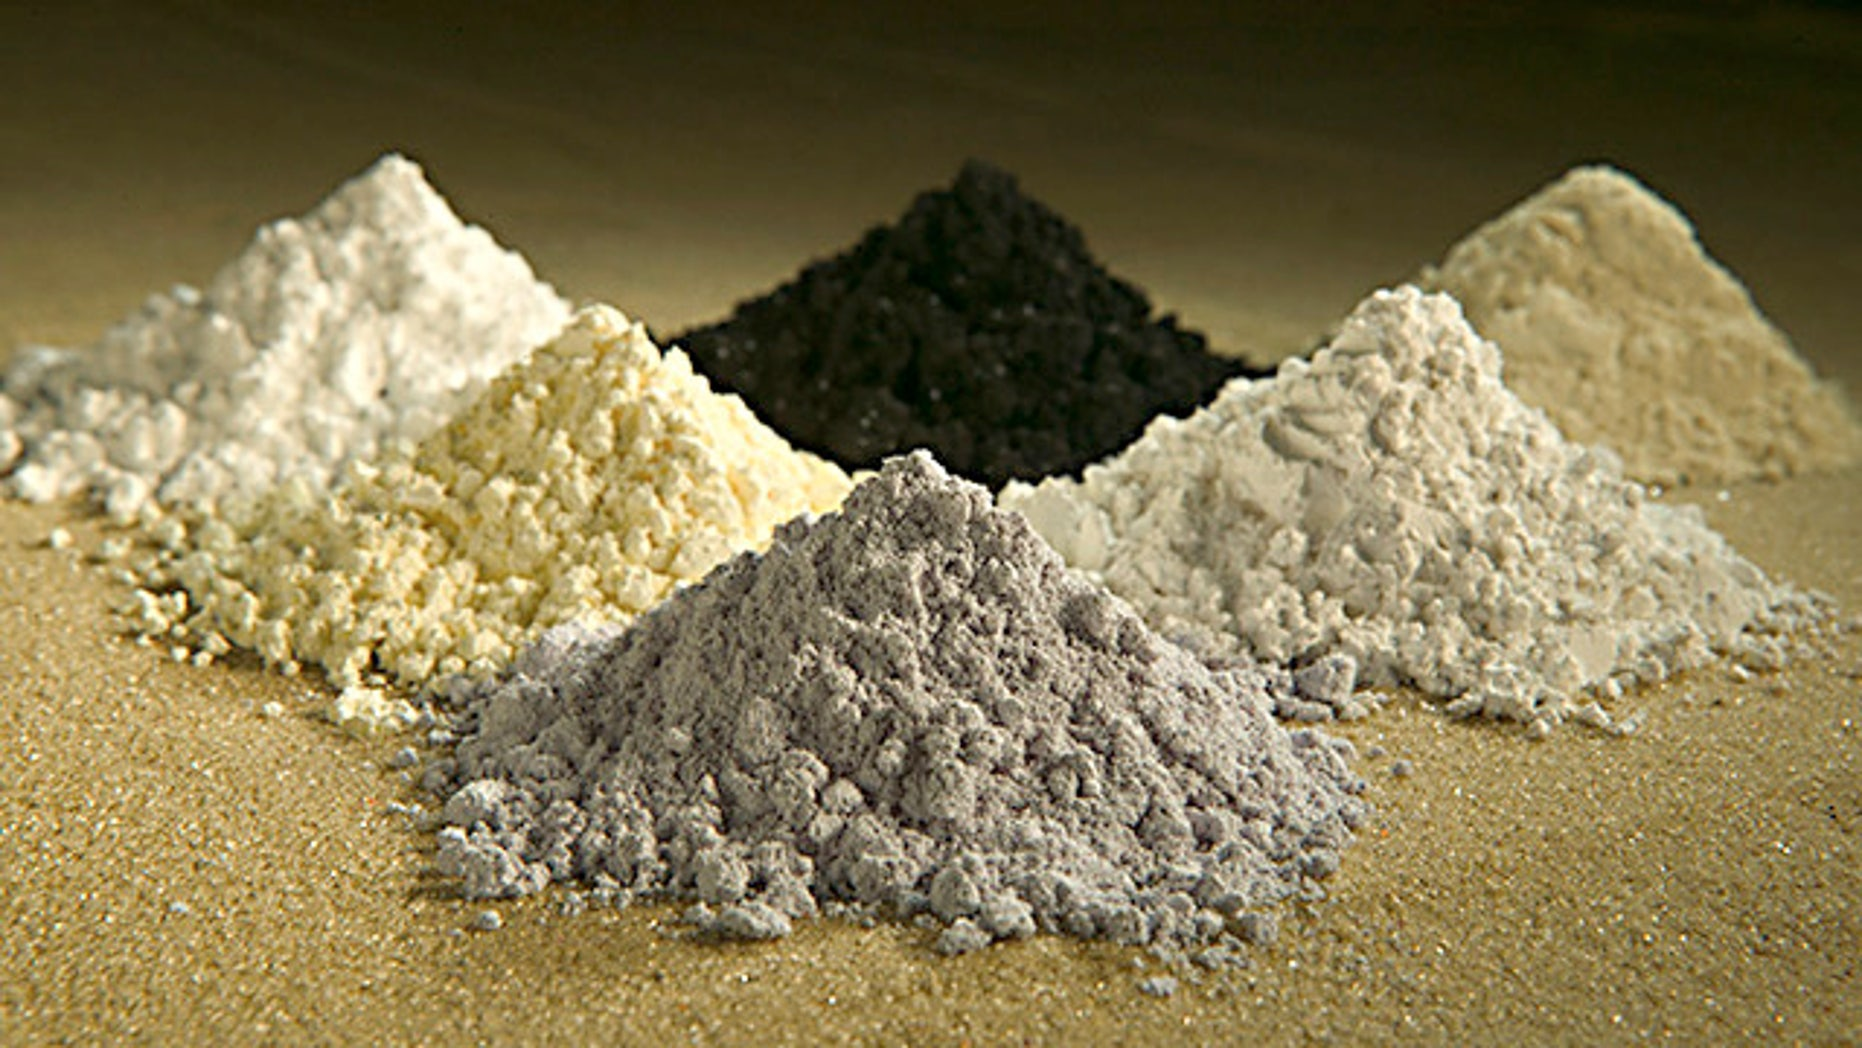 Rare-earth oxides -- a group of rare elements used in everything from cell phones to U.S. missile systems.